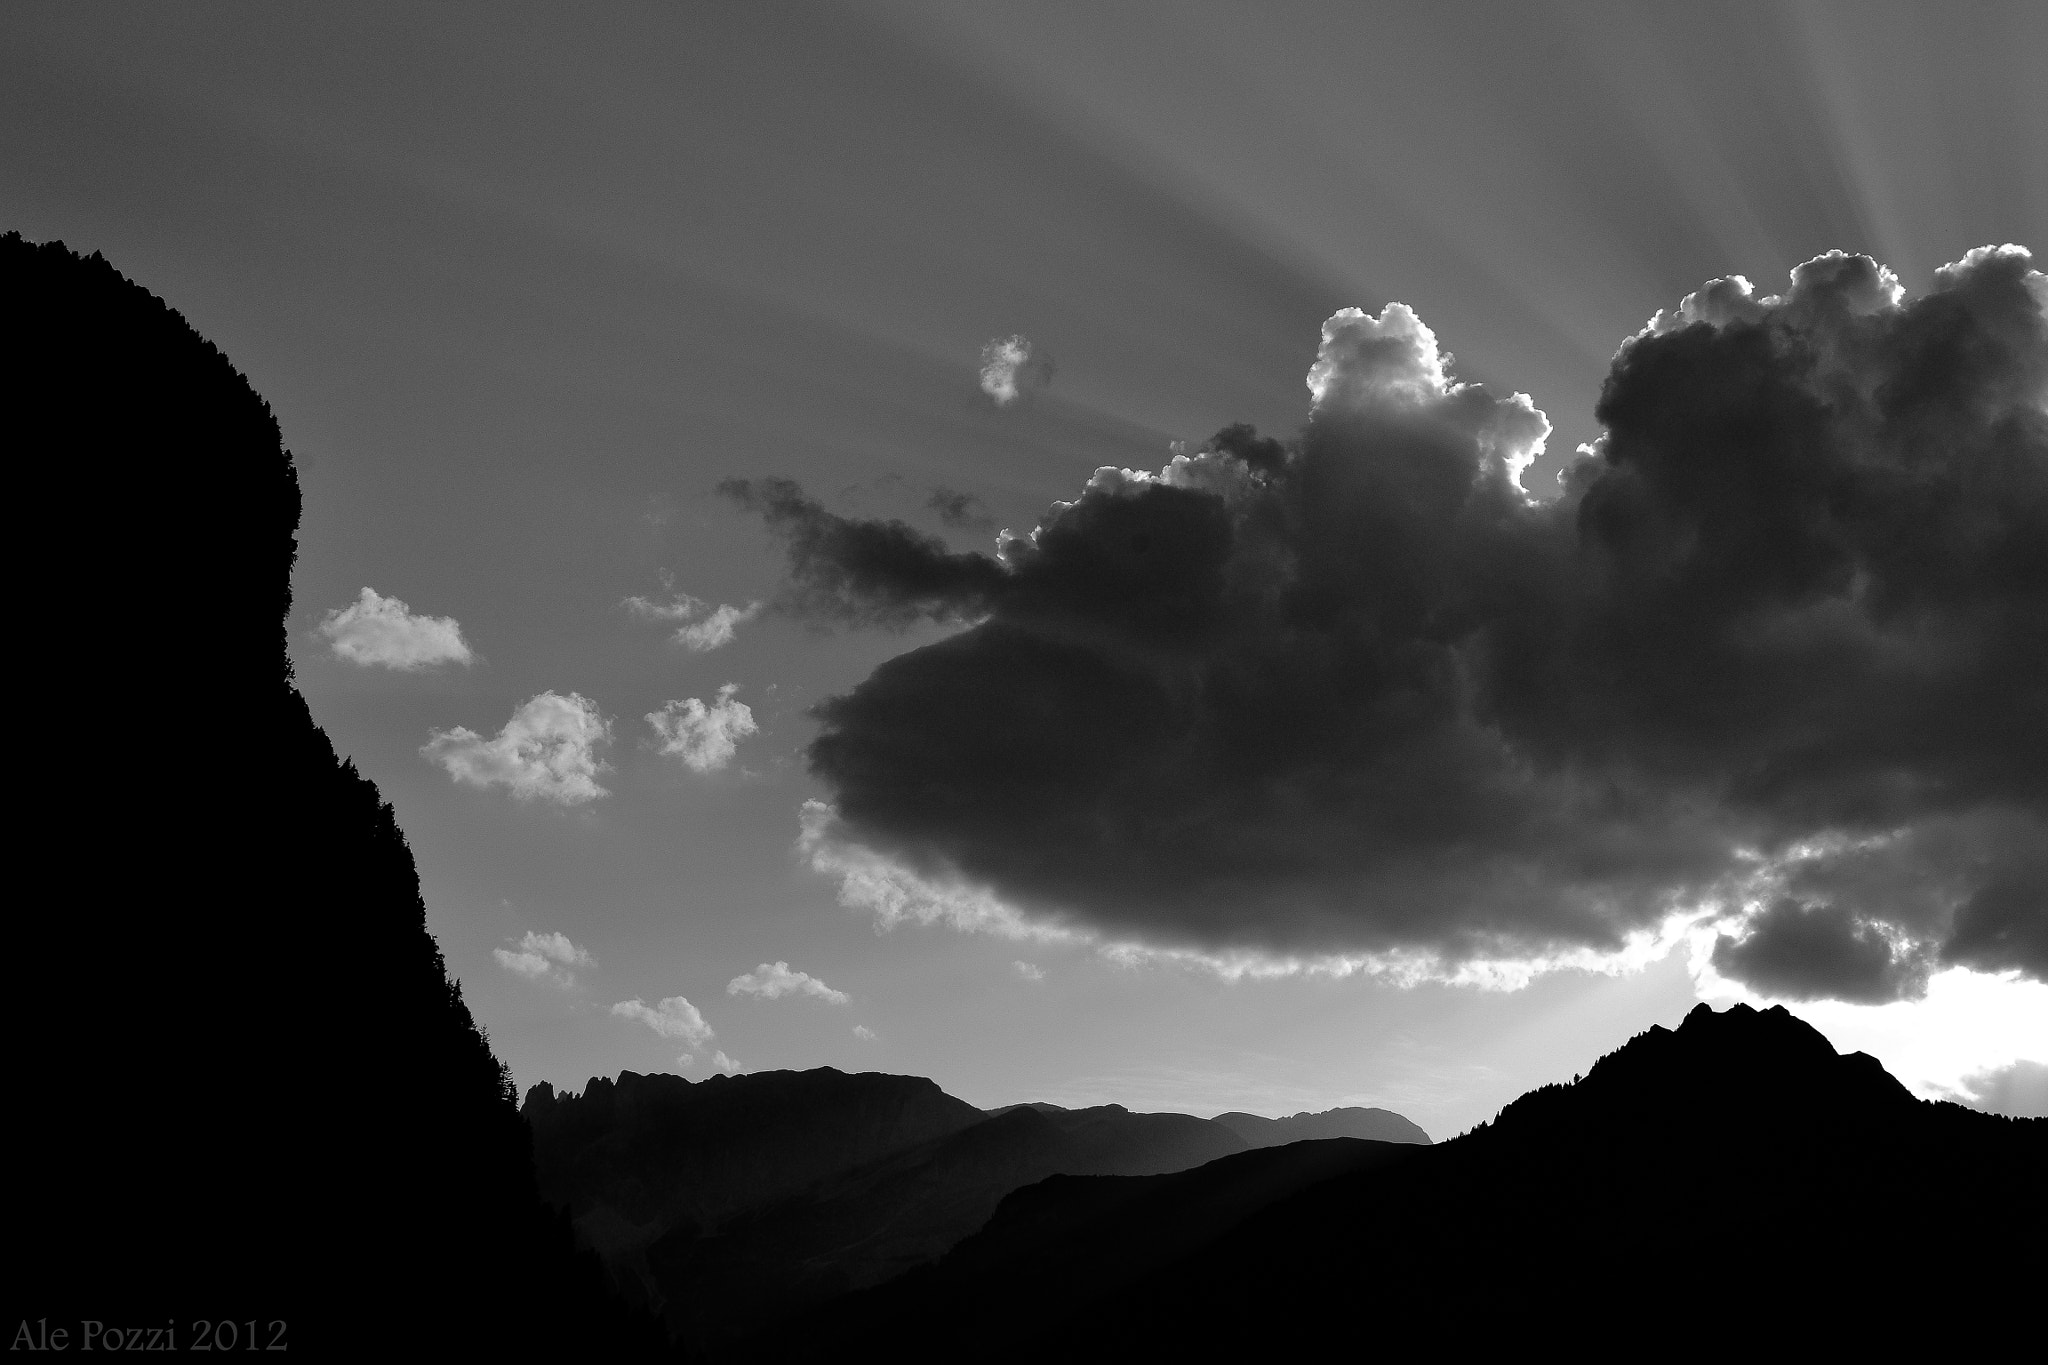 Photograph Cloud and mountains by Alessandro Pozzi on 500px